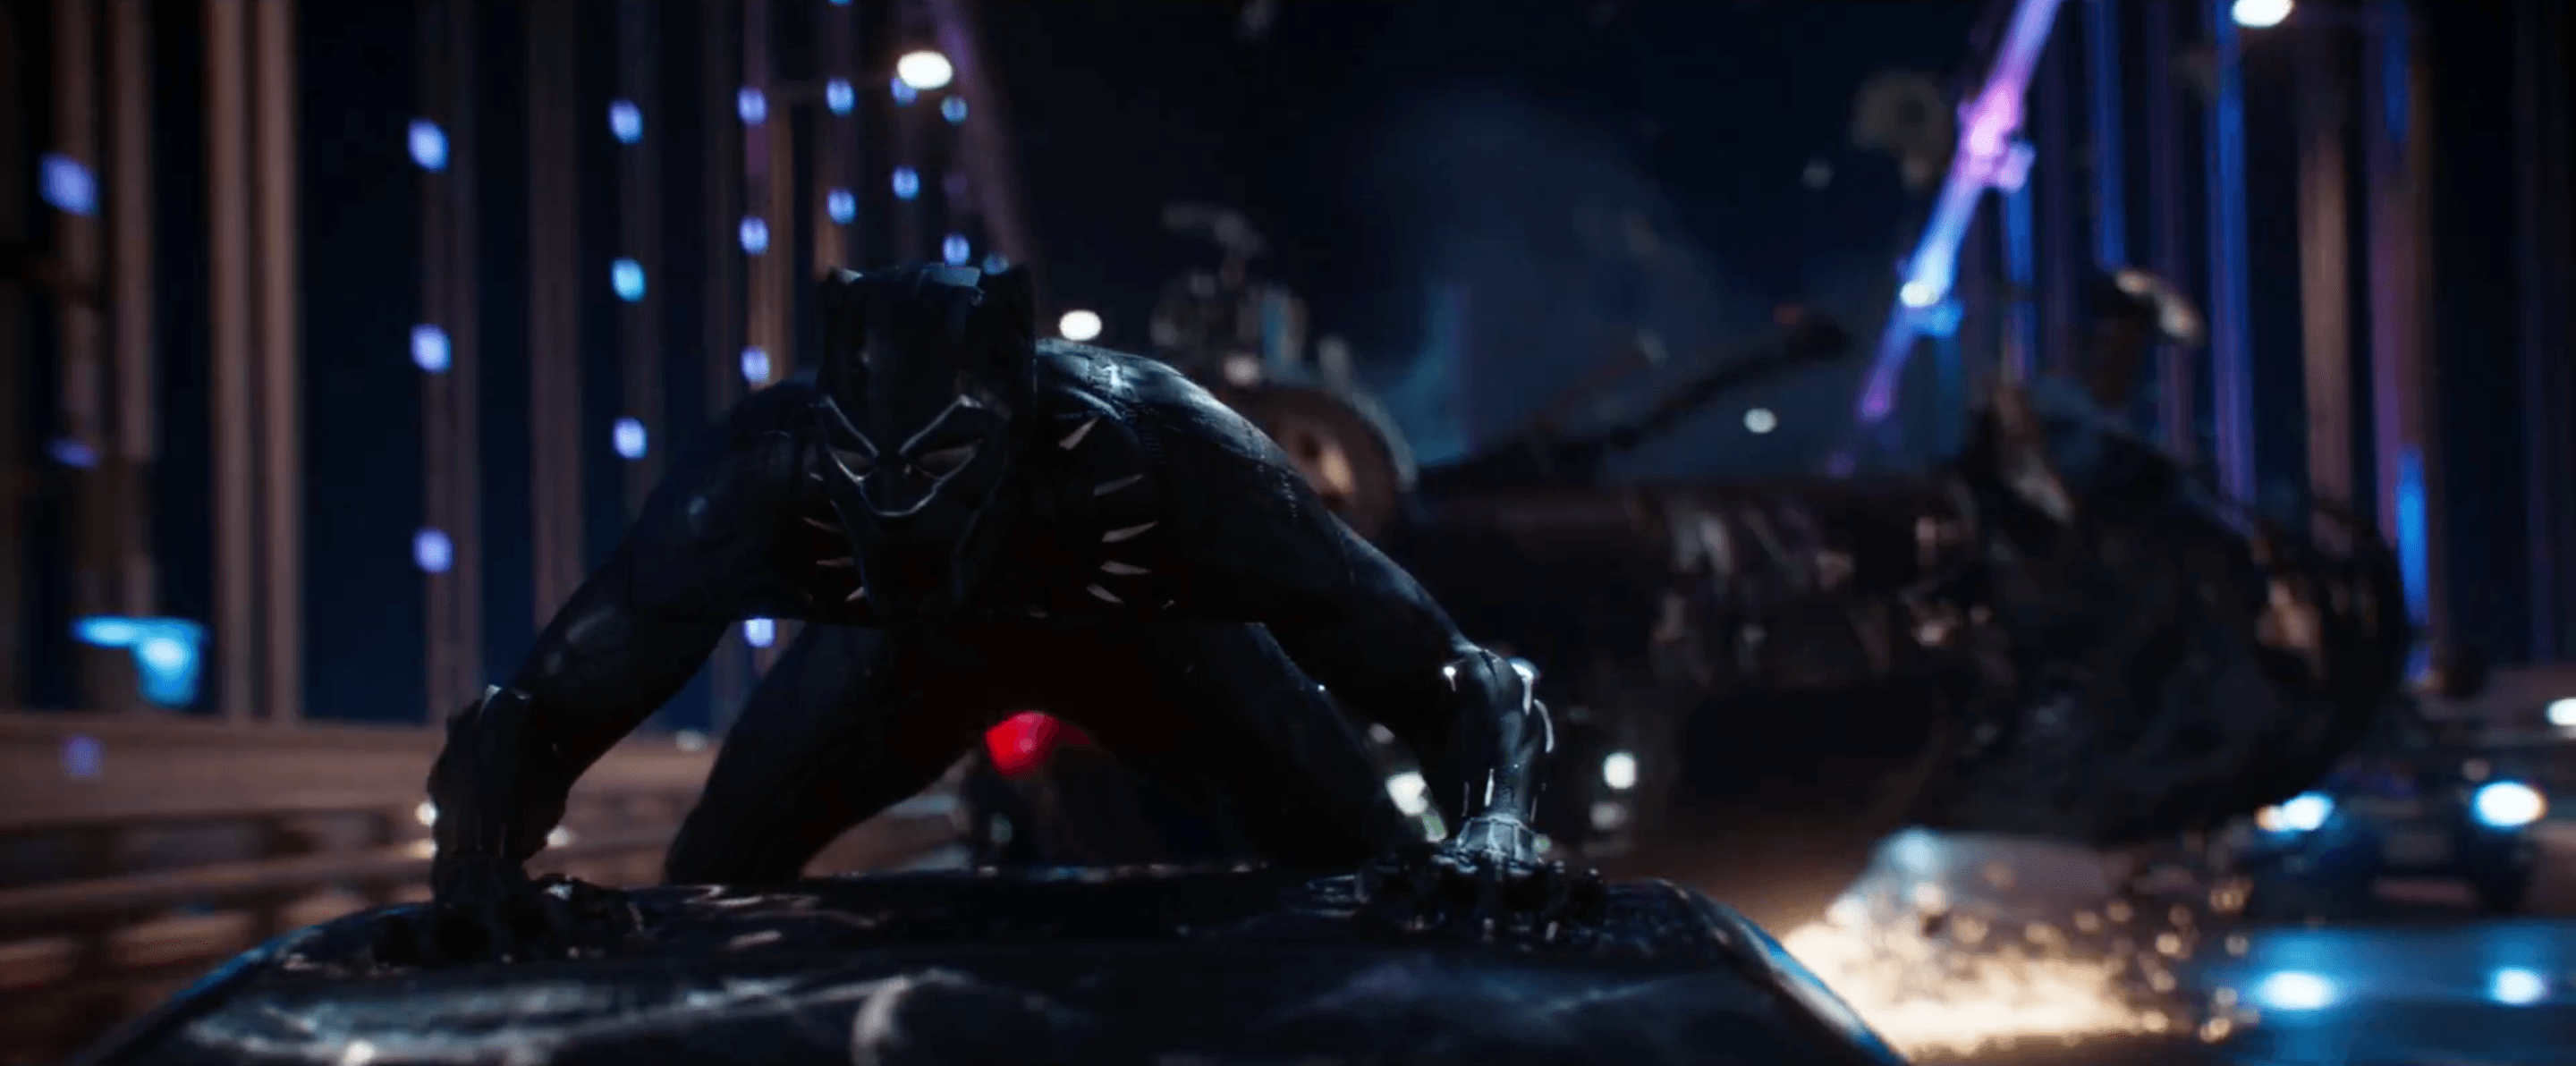 Marvel Releases First Black Panther Trailer